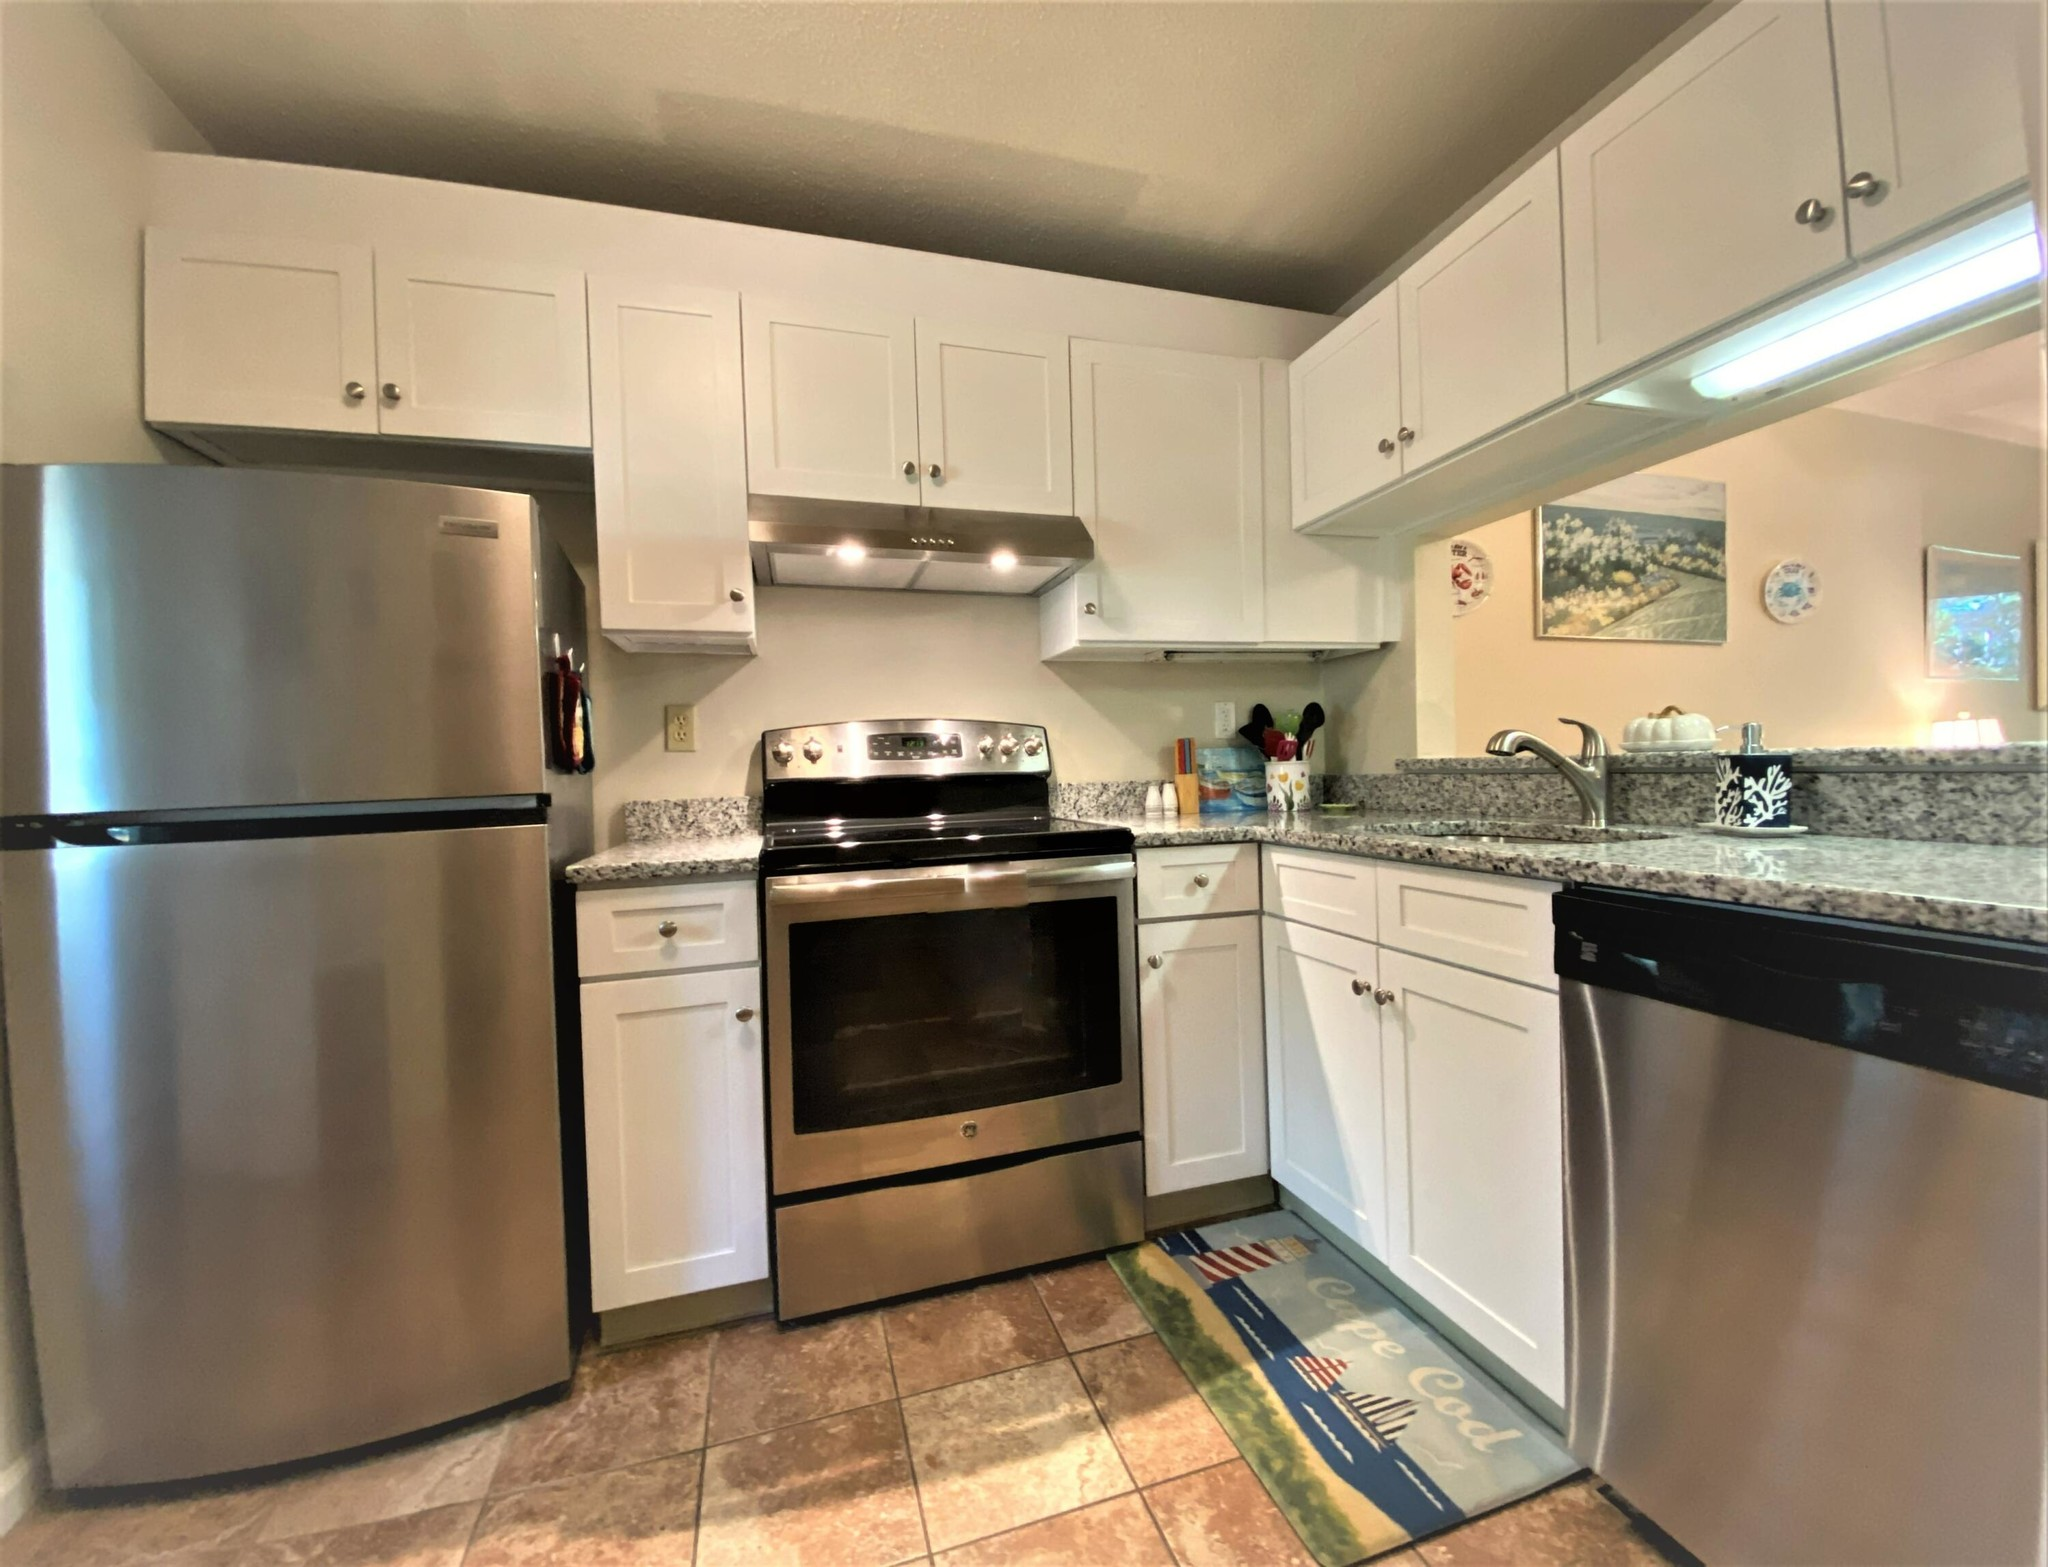 2-Story Condo In East Brewster